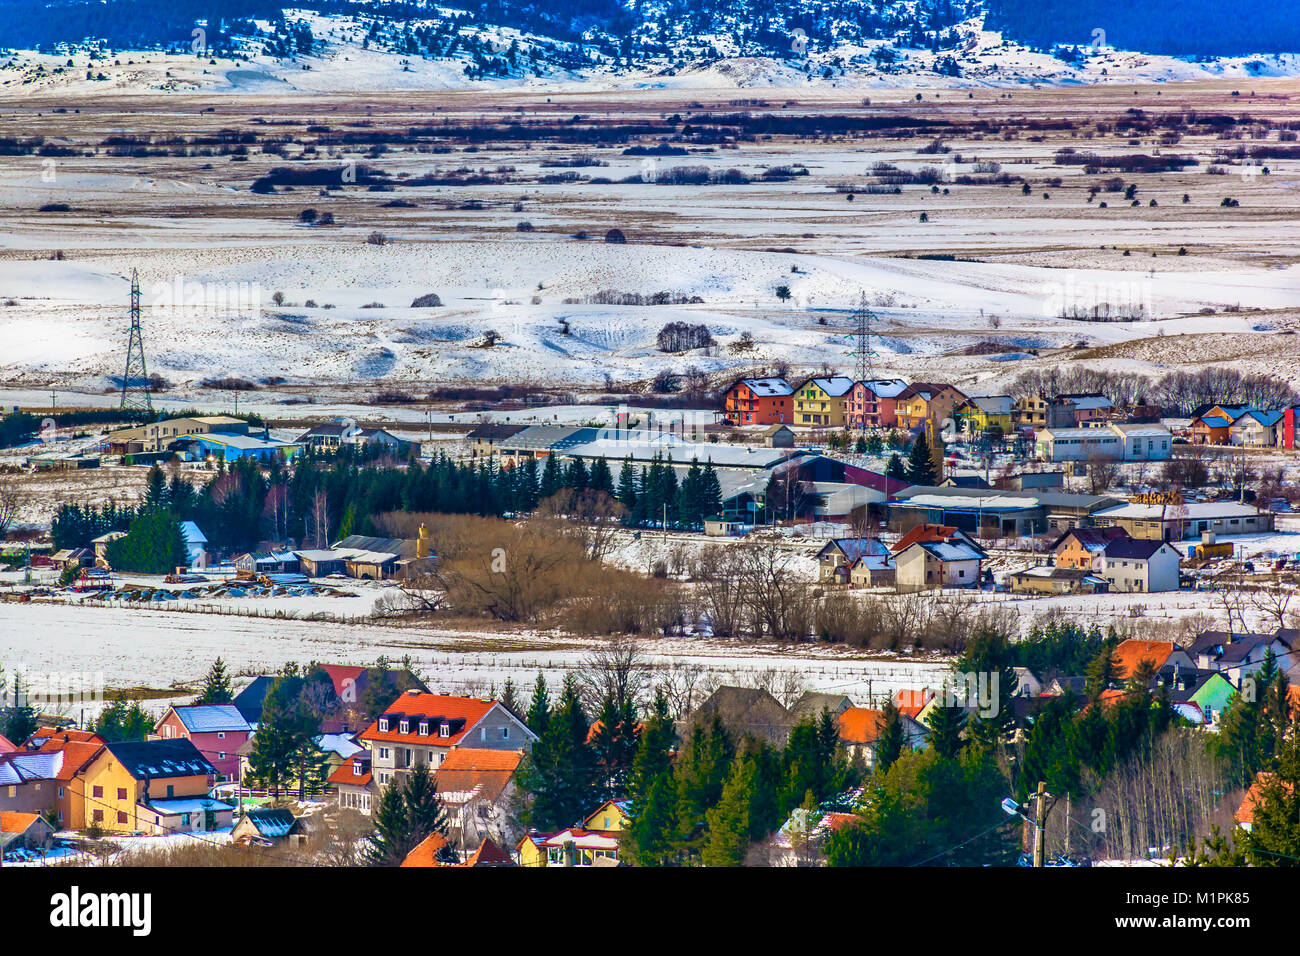 Aerial view at winter cityscape in Kupres canton, Bosnia Balkans. - Stock Image